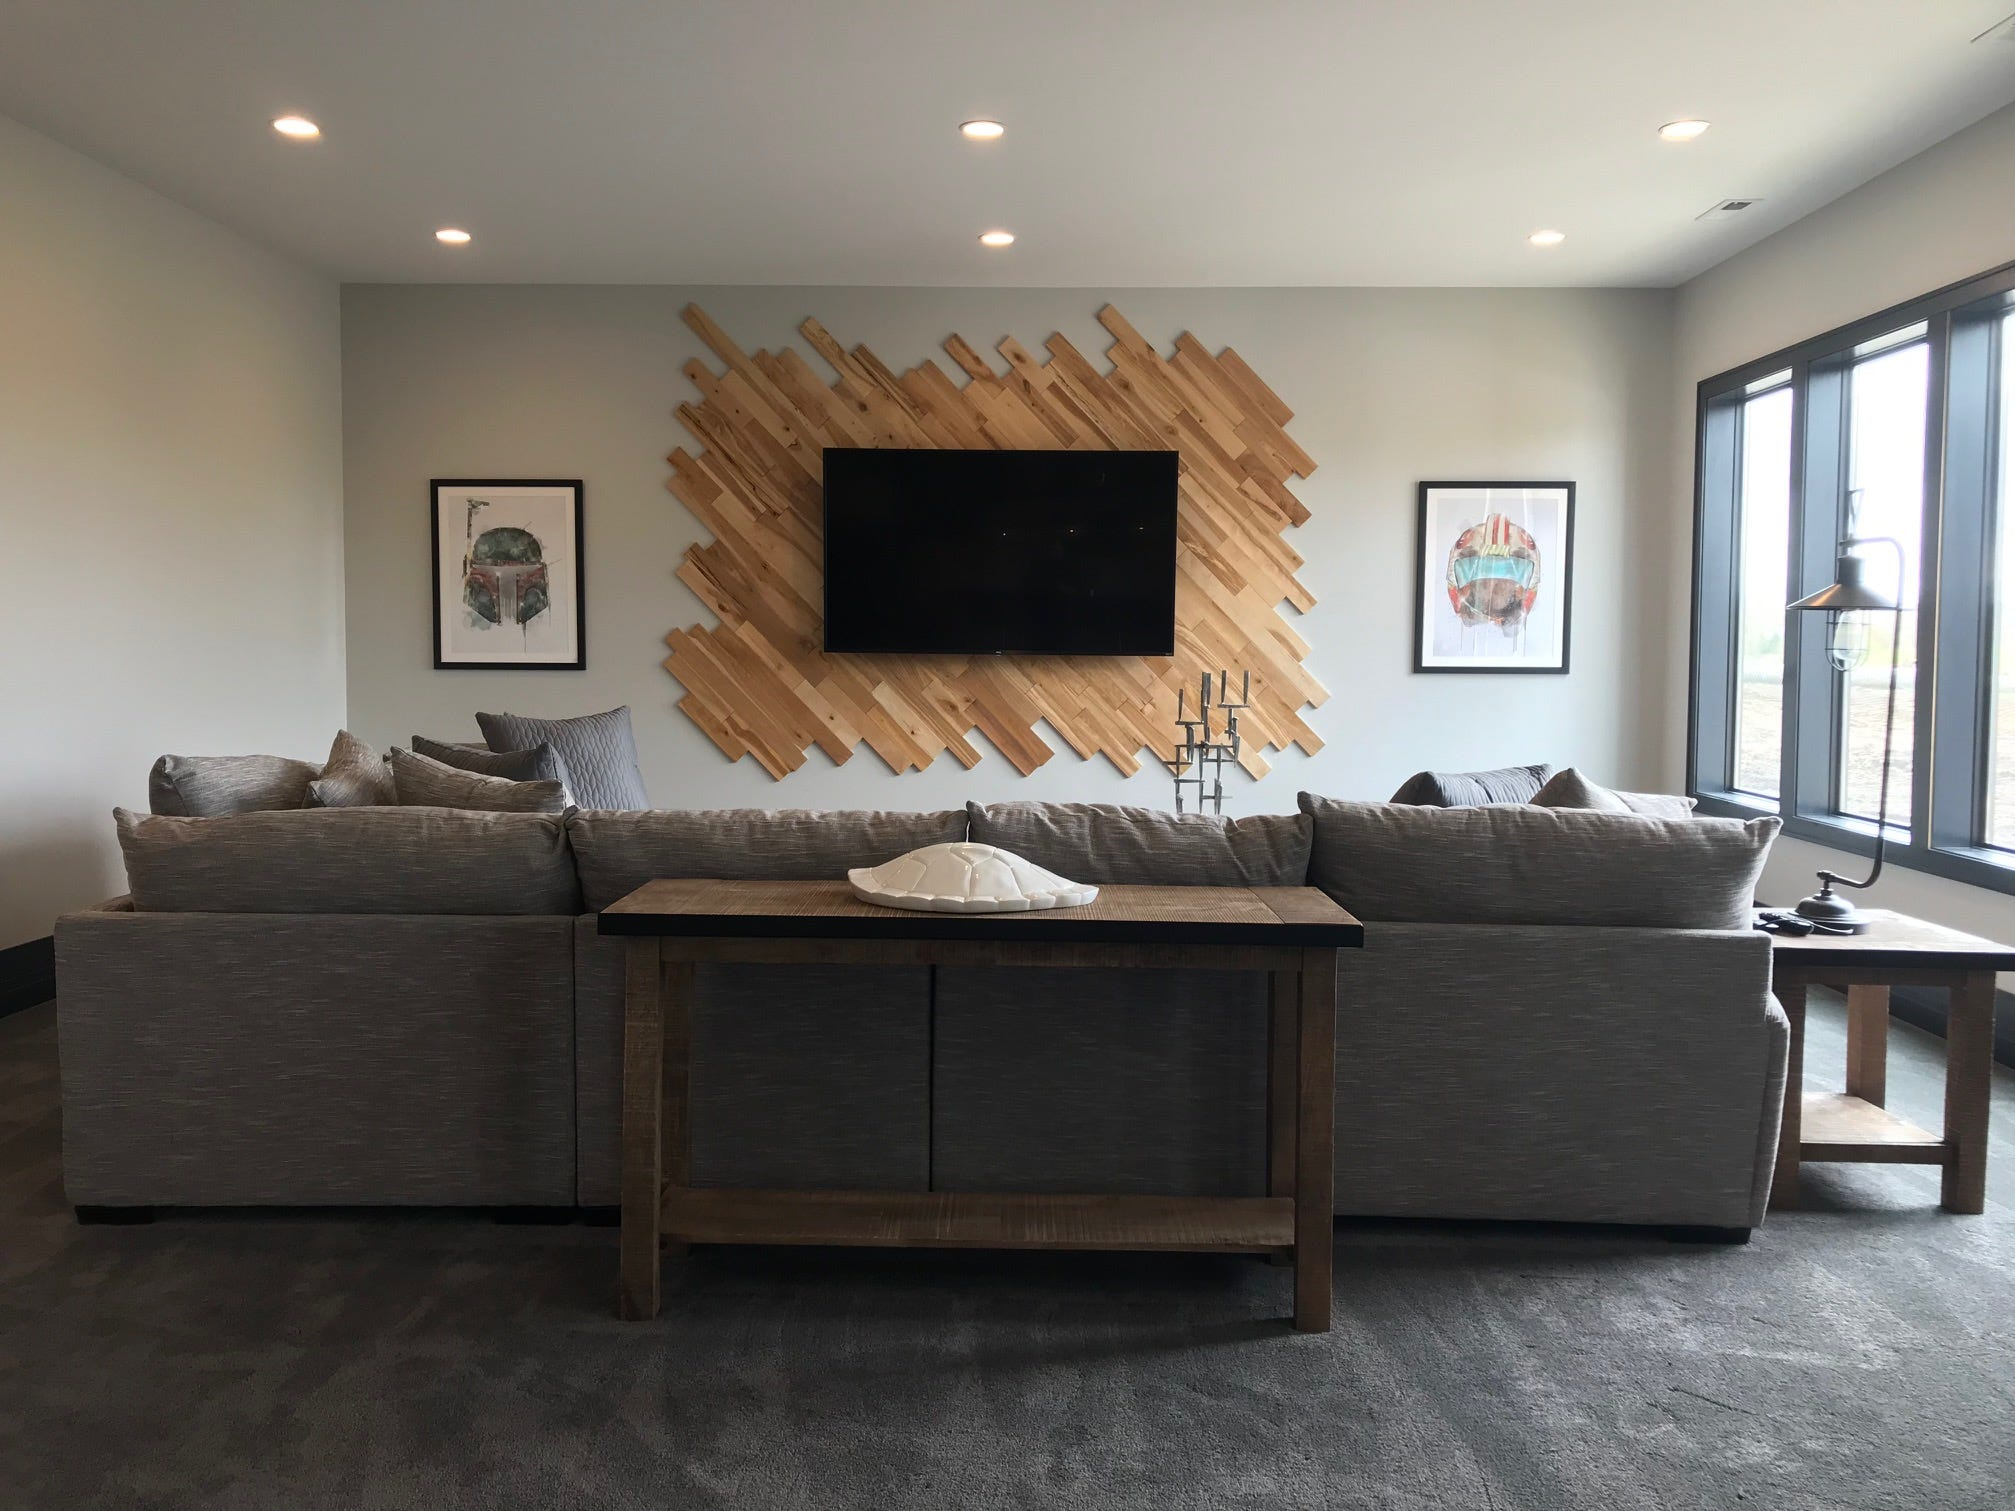 This 6,415-square-foot home at 909 S. Torrey Pine Lane is a feature home on the Sioux Empire Home Builder Association's 2019 Spring Parade of Homes. The 5-bed, 4 bath homewas built by Trademark Homes Inc.